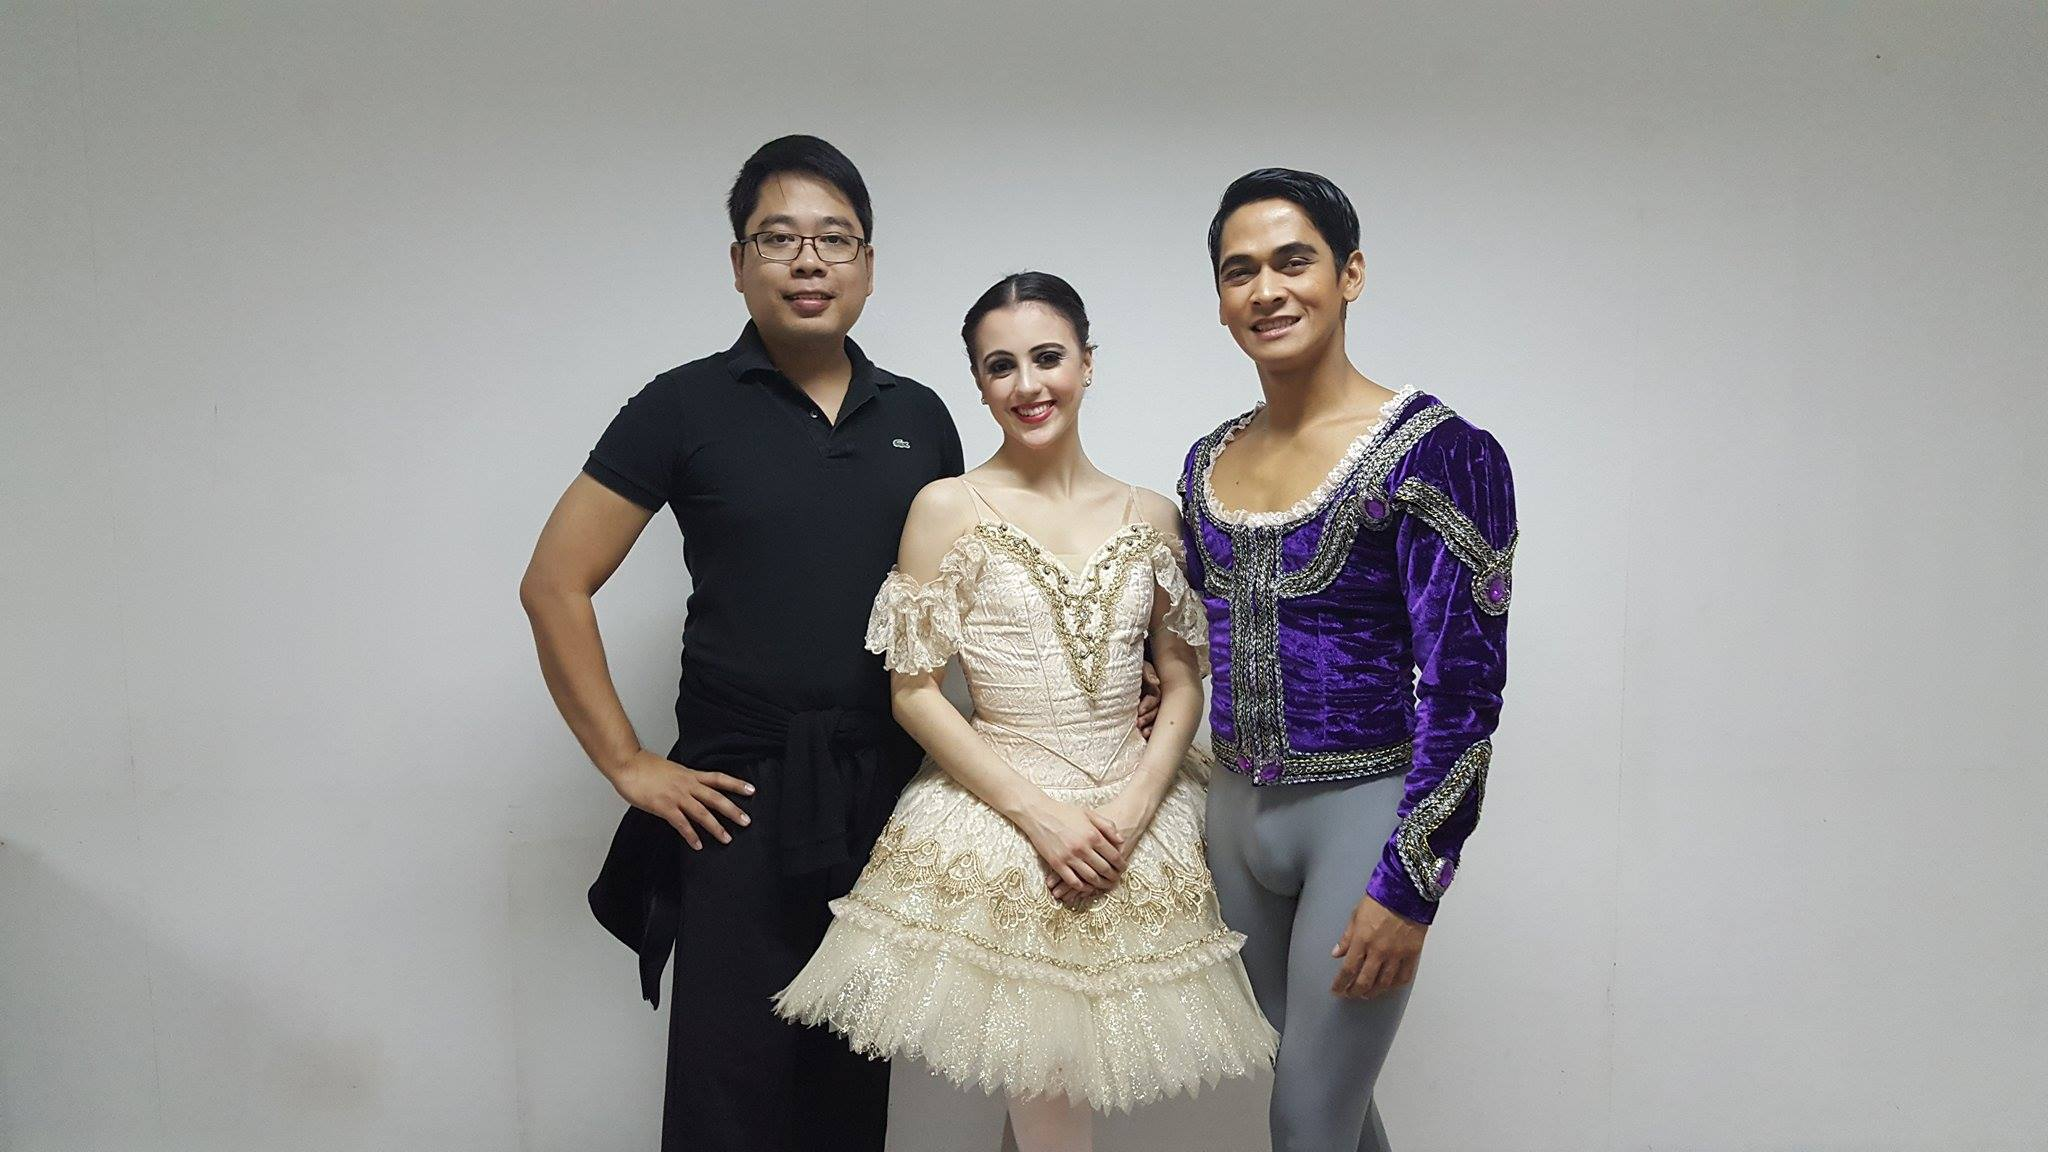 Ballet Manila's MIBC delegation: coach Jonathan Janolo, competitor Katherine Barkman, and non-competing partner Rudy de Dios